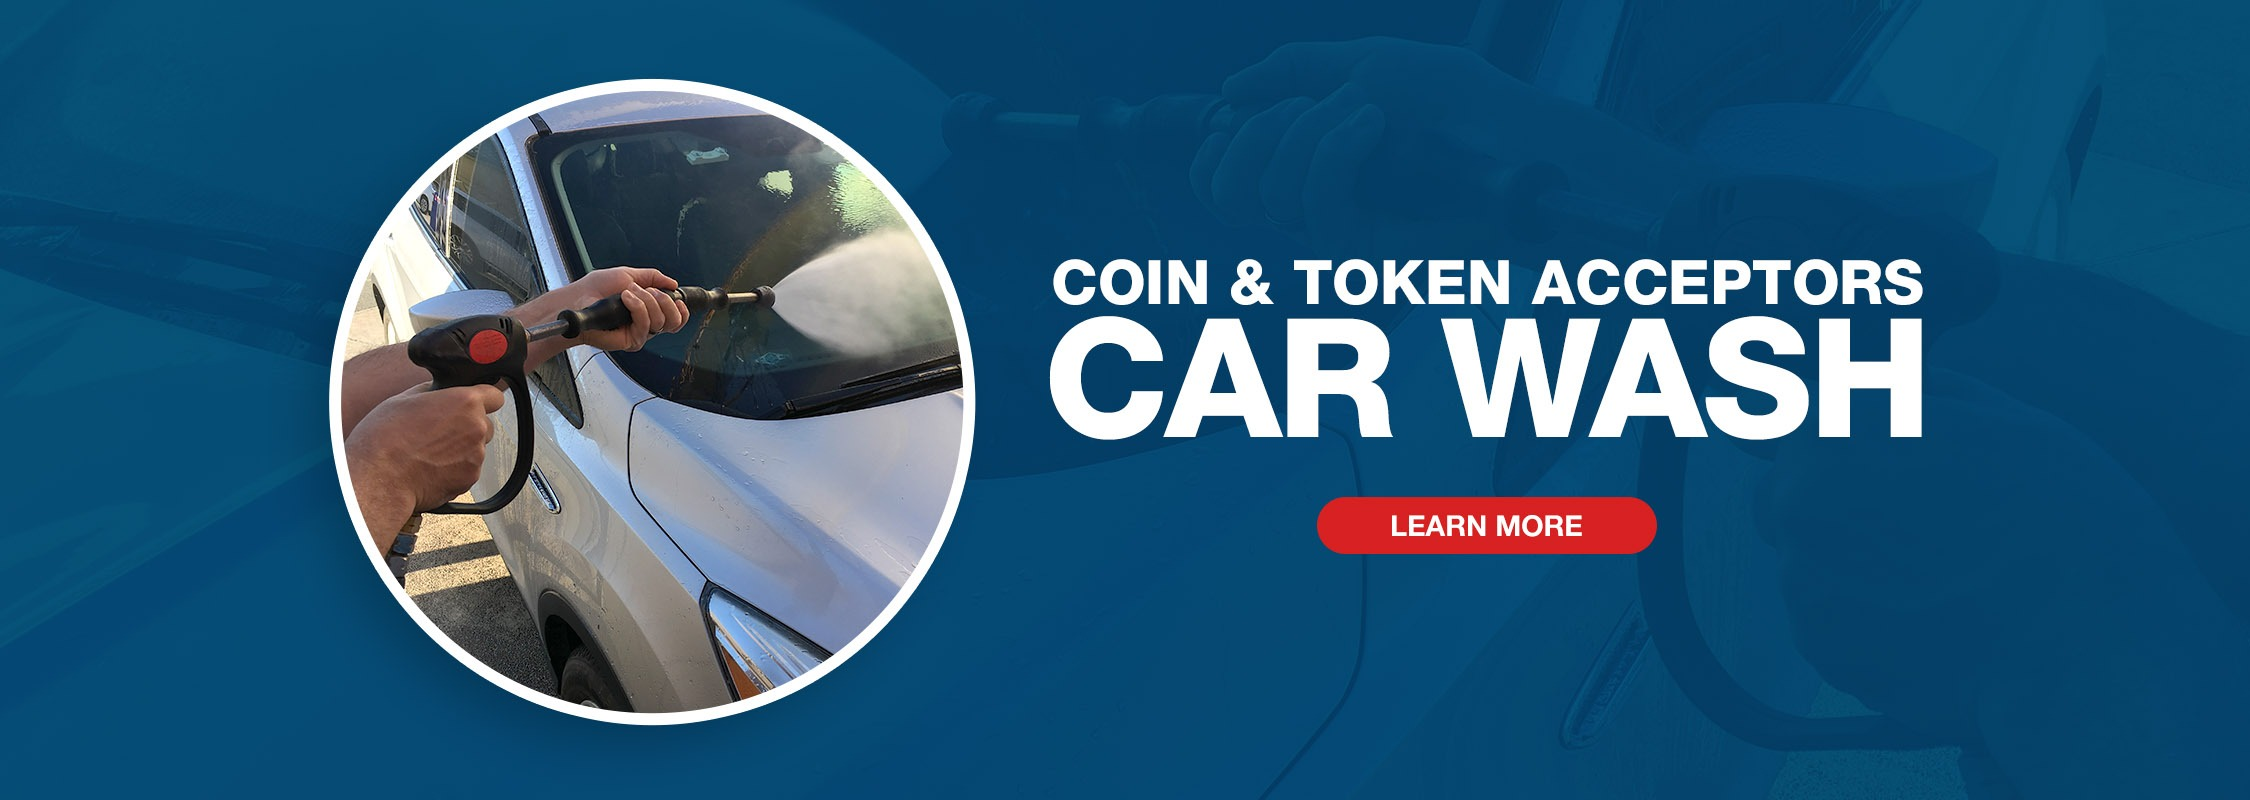 Imonex Coin & Token Acceptors - Car Wash Image